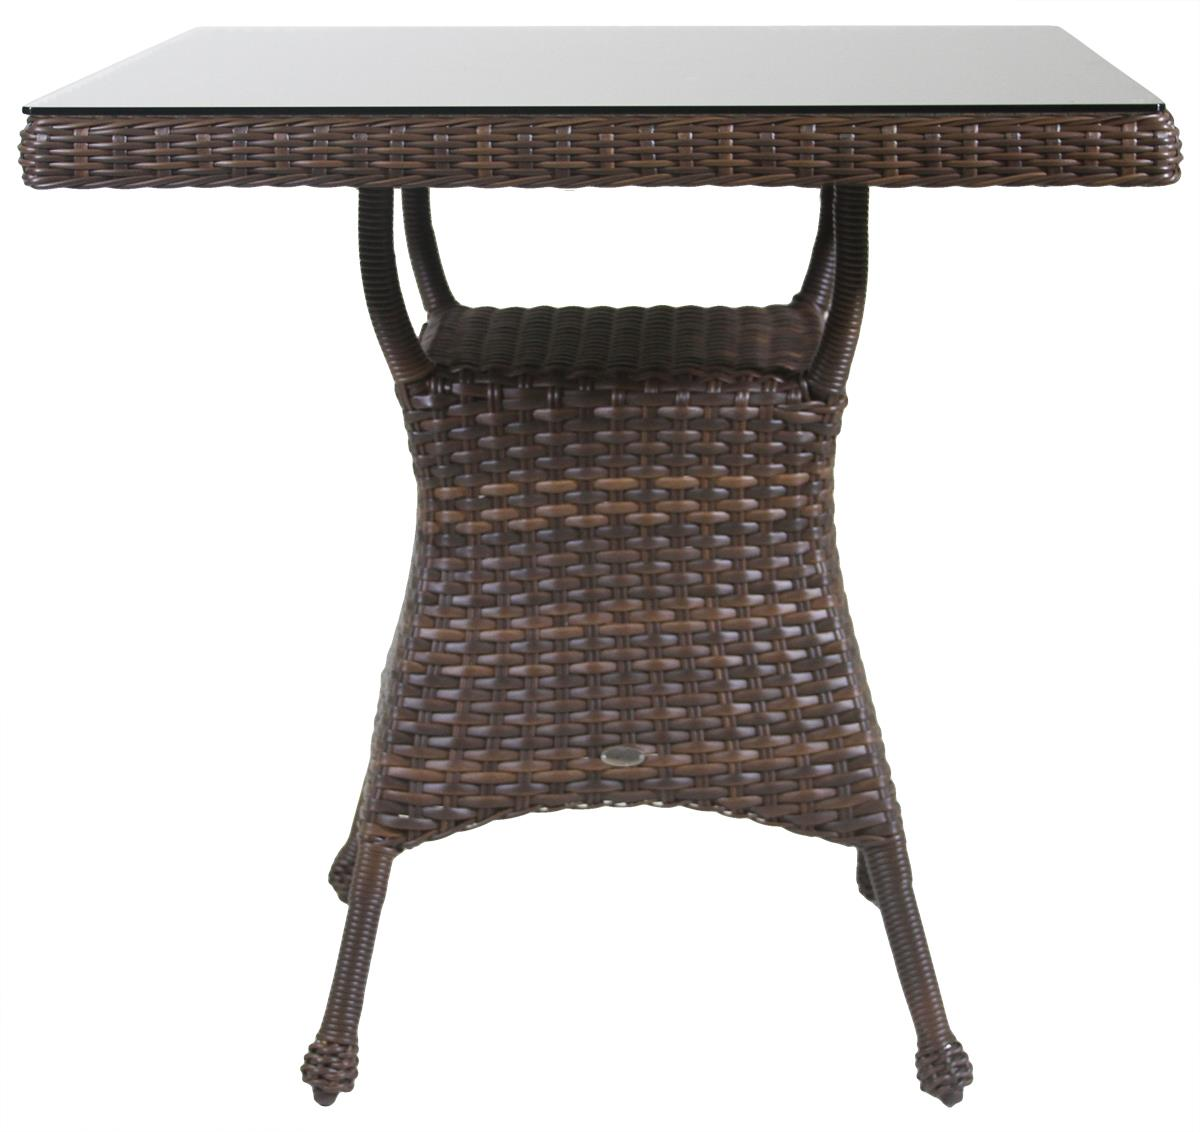 Ratana Havana Club Bar Table - Item Number: FN43236ESC C HAVANA CLUB